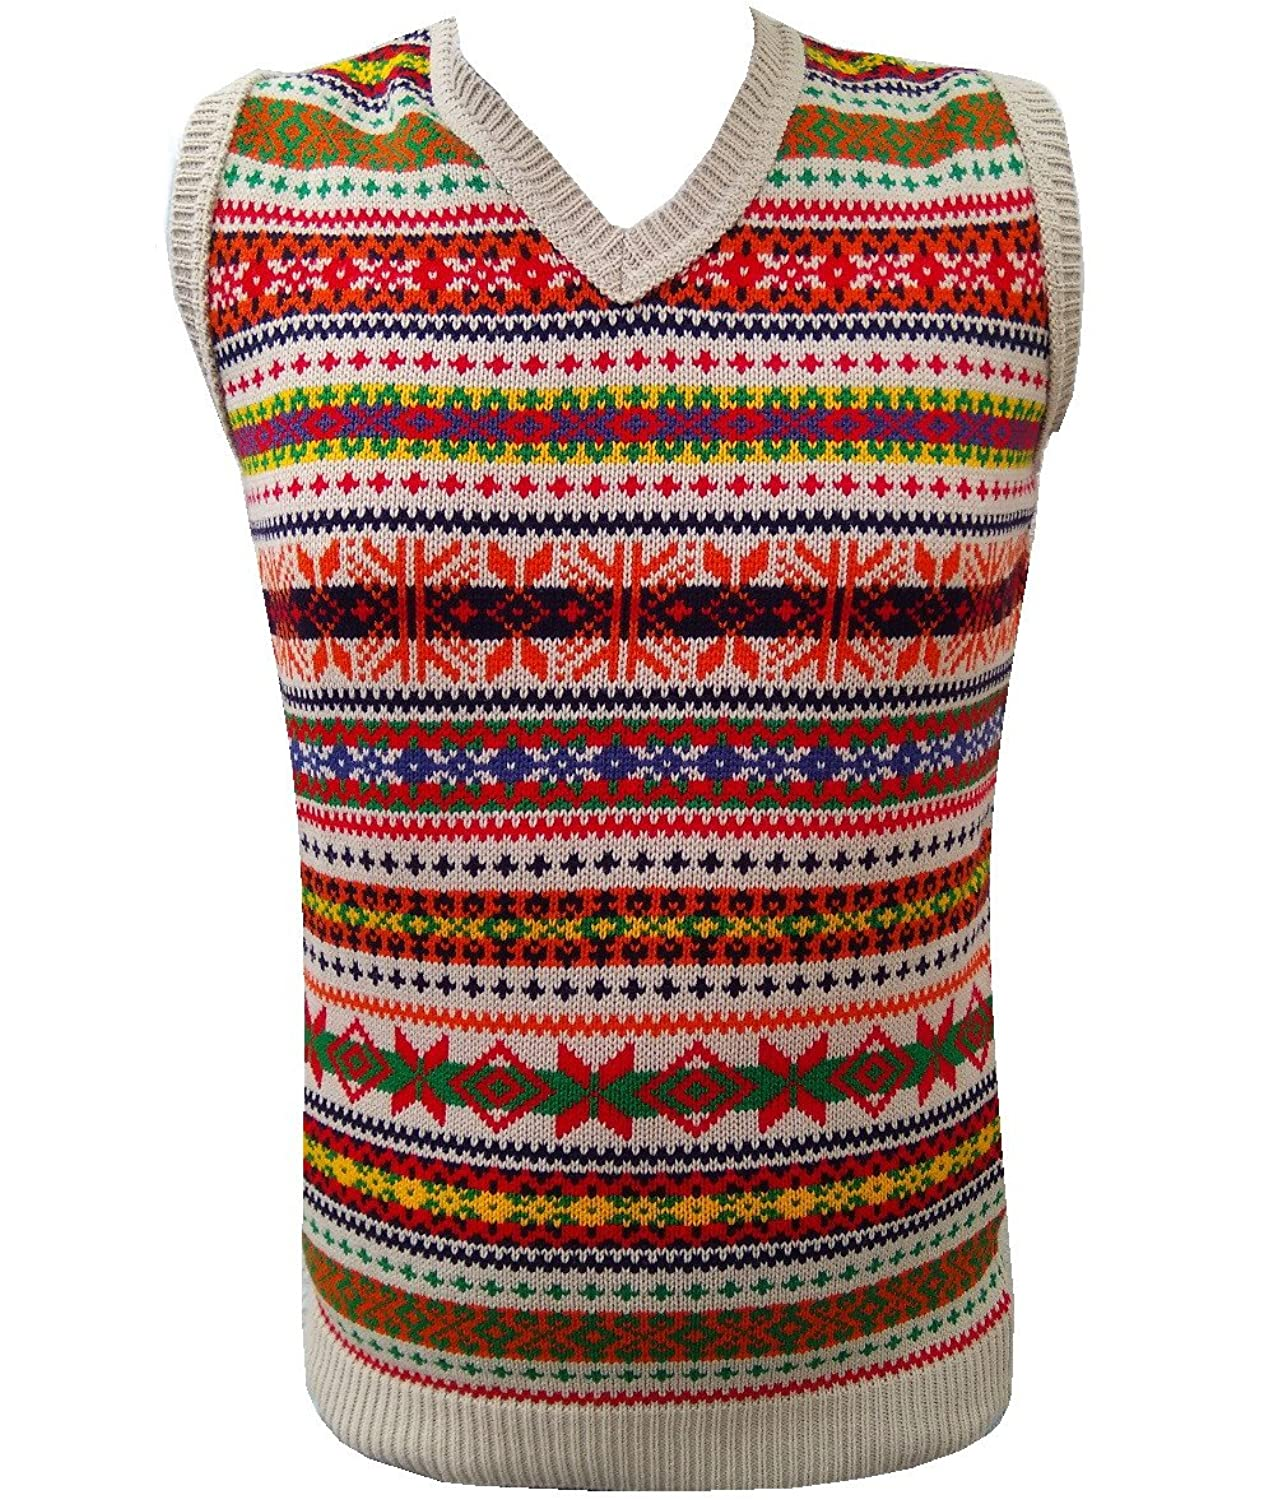 Retro Clothing for Men | Vintage Men's Fashion London Knitwear Gallery Retro Vintage Knitwear Tanktop Sleeveless Golf Sweater £19.99 AT vintagedancer.com